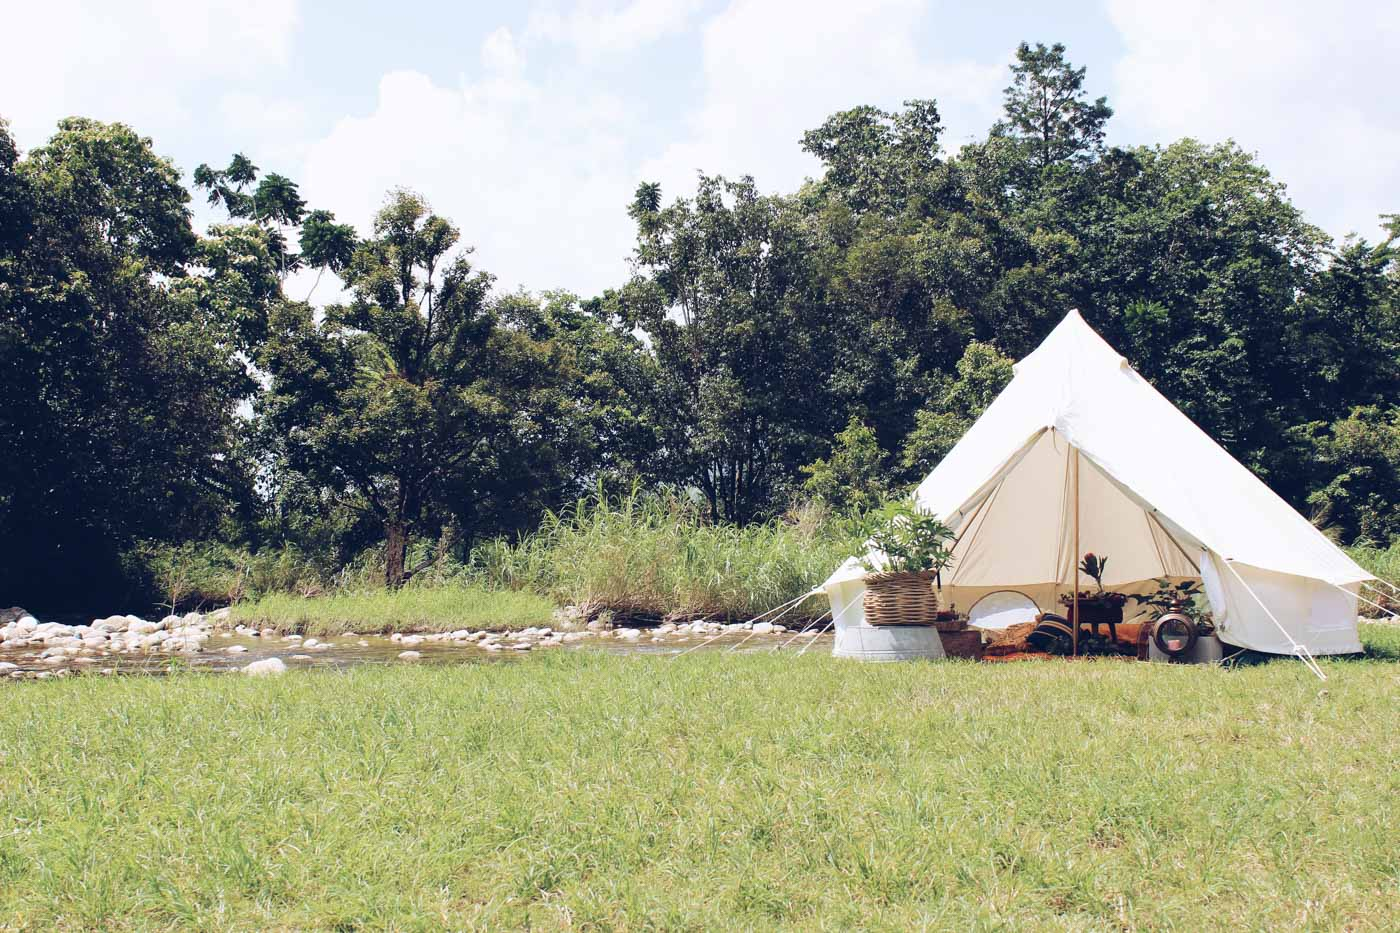 the_Collection_co_grazing_table_cairns_weddings_catering_grazing_platter_hire_pop_up_picnic_bell_tent_event_hire_styling-23-2.jpg